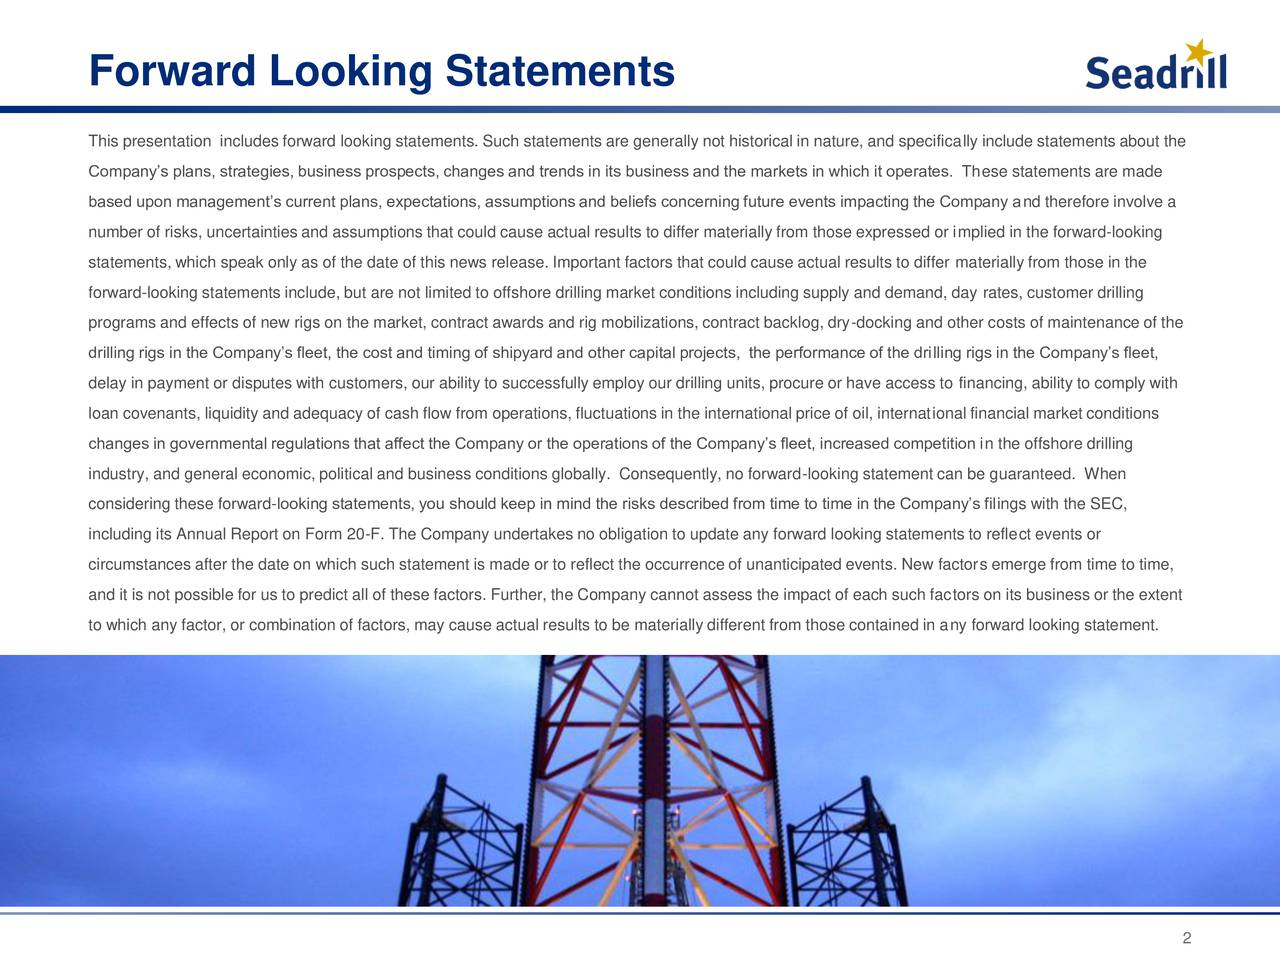 This presentation includes forward looking statements. Such statements are generally not historical in nature, and specifically include statements about the Companys plans, strategies, business prospects, changes and trends in its business and the markets in which it operates. These statements are made based upon managements current plans, expectations, assumptions and beliefs concerning future events impacting the Company and therefore involve a number of risks, uncertainties and assumptions that could cause actual results to differ materially from those expressed or implied in the forward-looking statements, which speak only as of the date of this news release. Important factors that could cause actual results to differ materially from those in the forward-looking statements include, but are not limited to offshore drilling market conditions including supply and demand, day rates, customer drilling programs and effects of new rigs on the market, contract awards and rig mobilizations, contract backlog, dry-docking and other costs of maintenance of the drilling rigs in the Companys fleet, the cost and timing of shipyard and other capital projects, the performance of the drilling rigs in the Companys fleet, delay in payment or disputes with customers, our ability to successfully employ our drilling units, procure or have access to financing, ability to comply with loan covenants, liquidity and adequacy of cash flow from operations, fluctuations in the international price of oil, international financial market conditions changes in governmental regulations that affect the Company or the operations of the Companys fleet, increased competition in the offshore drilling industry, and general economic, political and business conditions globally. Consequently, no forward-looking statement can be guaranteed. When considering these forward-looking statements, you should keep in mind the risks described from time to time in the Companys filings with the SEC, including its Annu